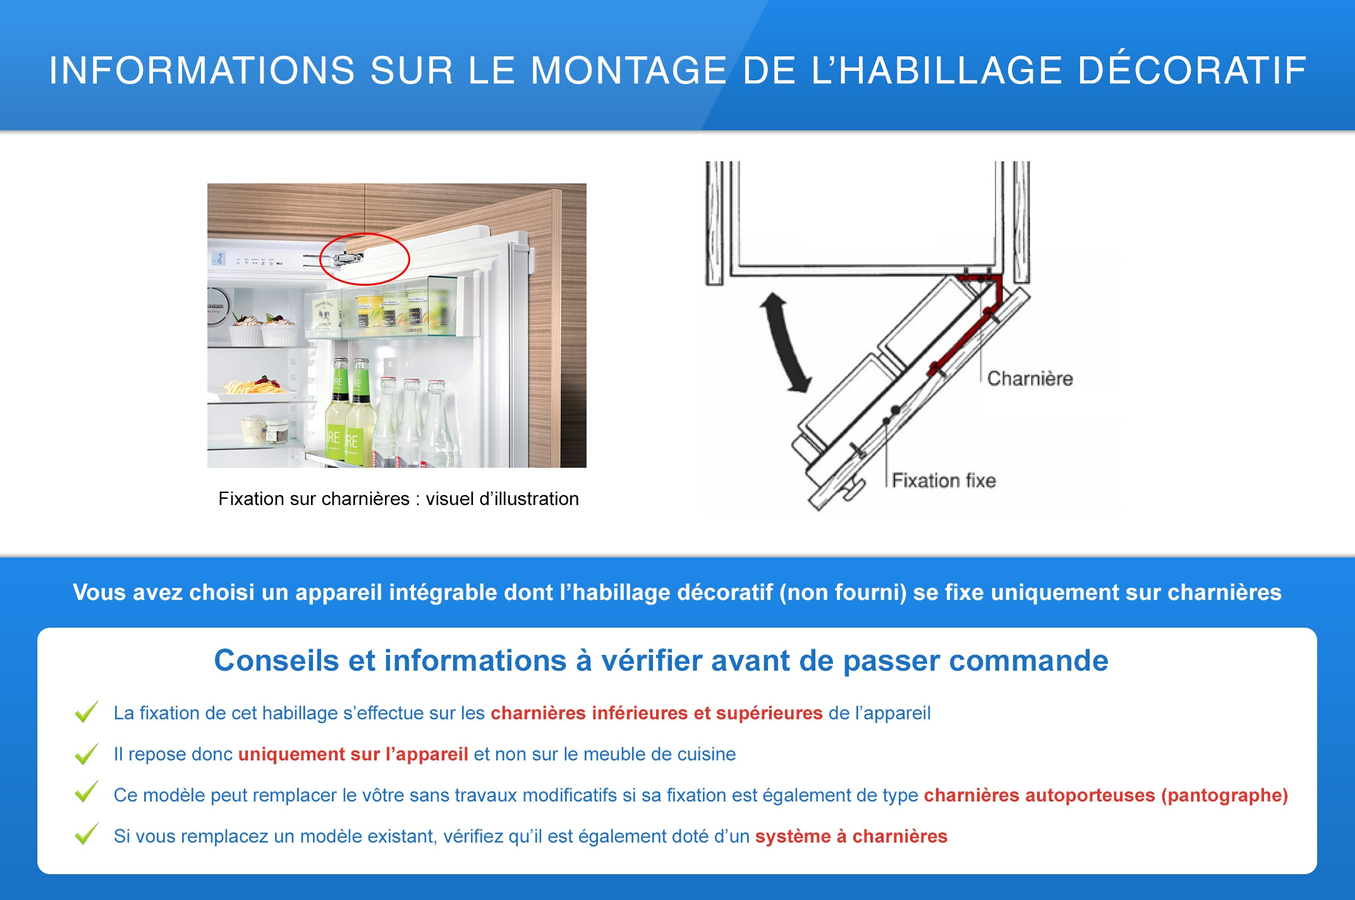 Refrigerateur congelateur encastrable liebherr ecbn 5066g - Fixation porte frigo encastrable ...